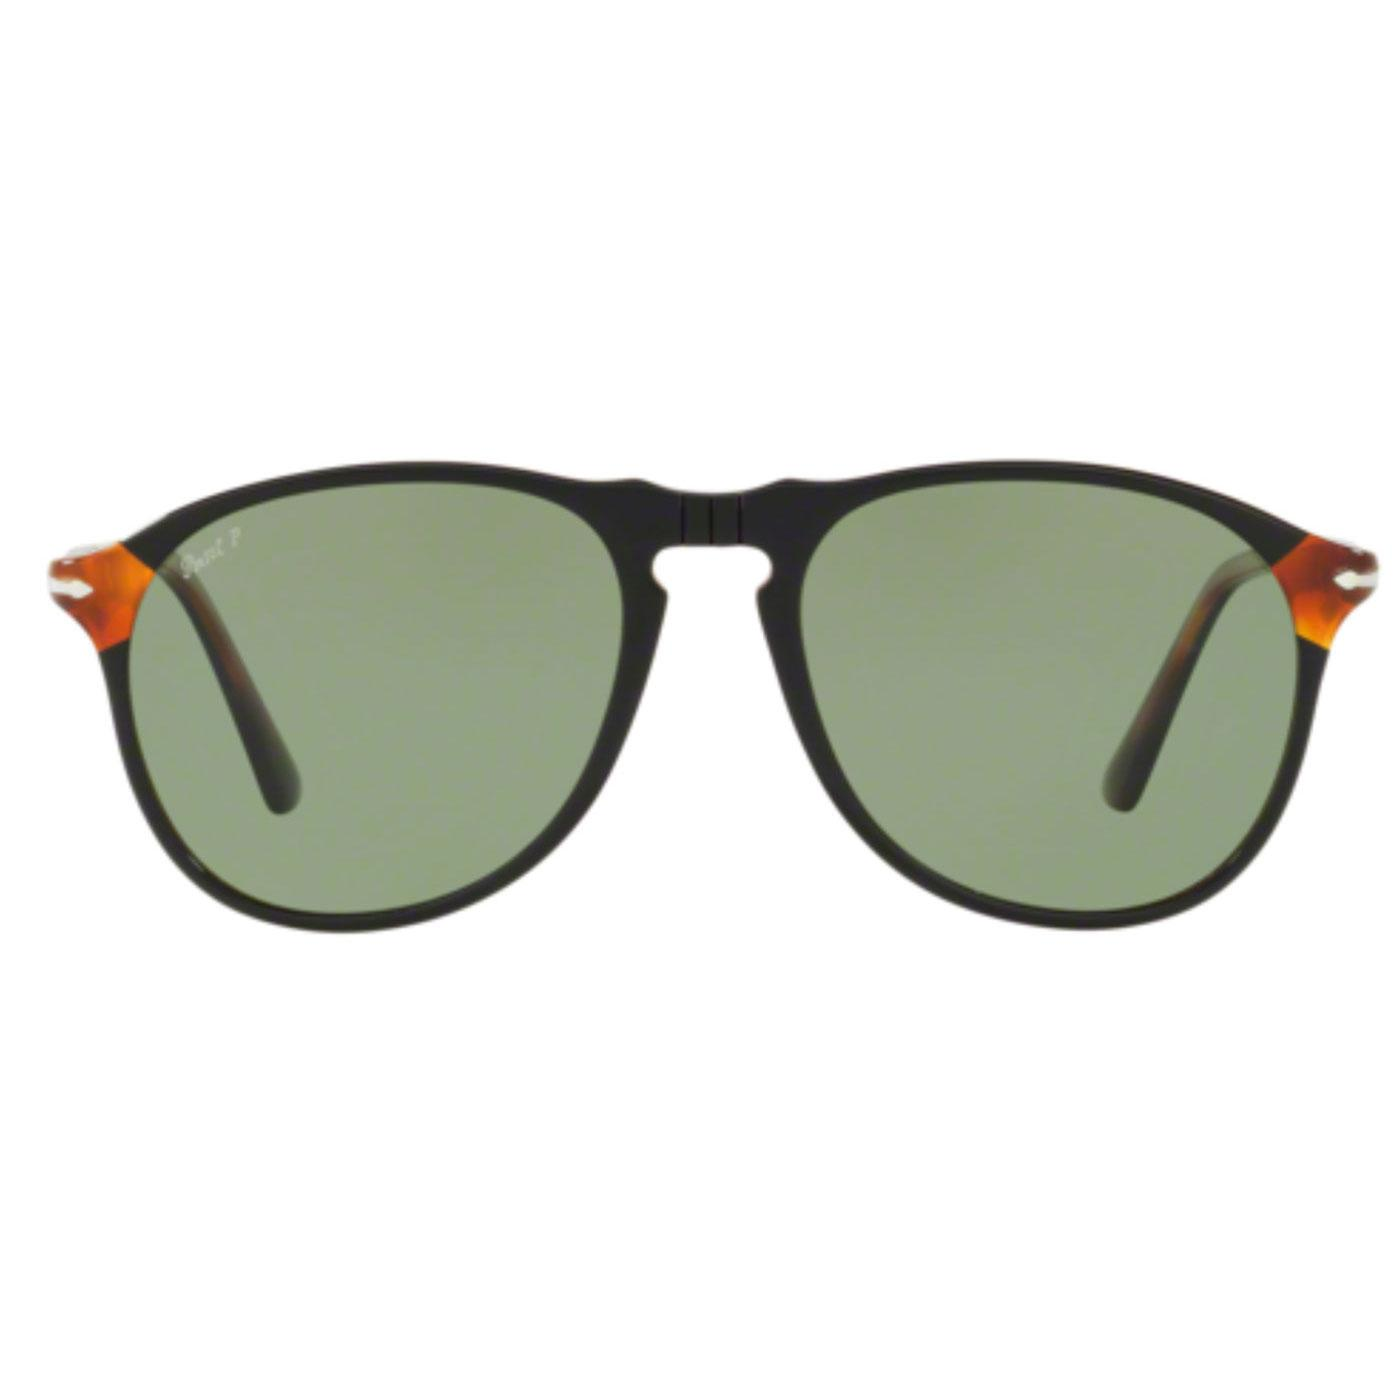 PERSOL 649 Series 2-Tone Polarised Sunglasses (B)